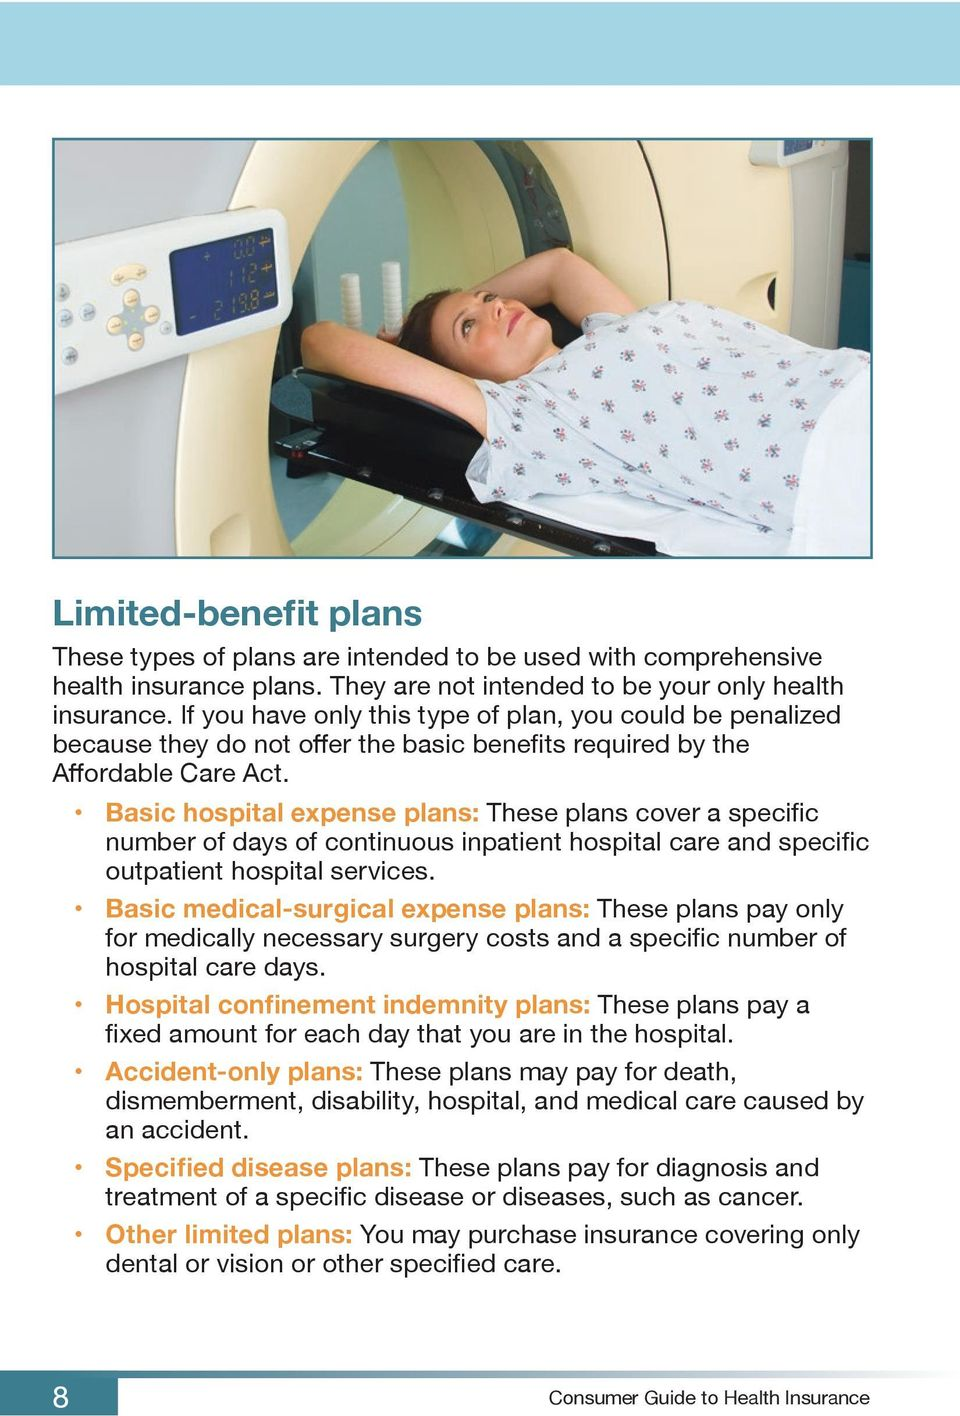 Basic hospital expense plans: These plans cover a specific number of days of continuous inpatient hospital care and specific outpatient hospital services.